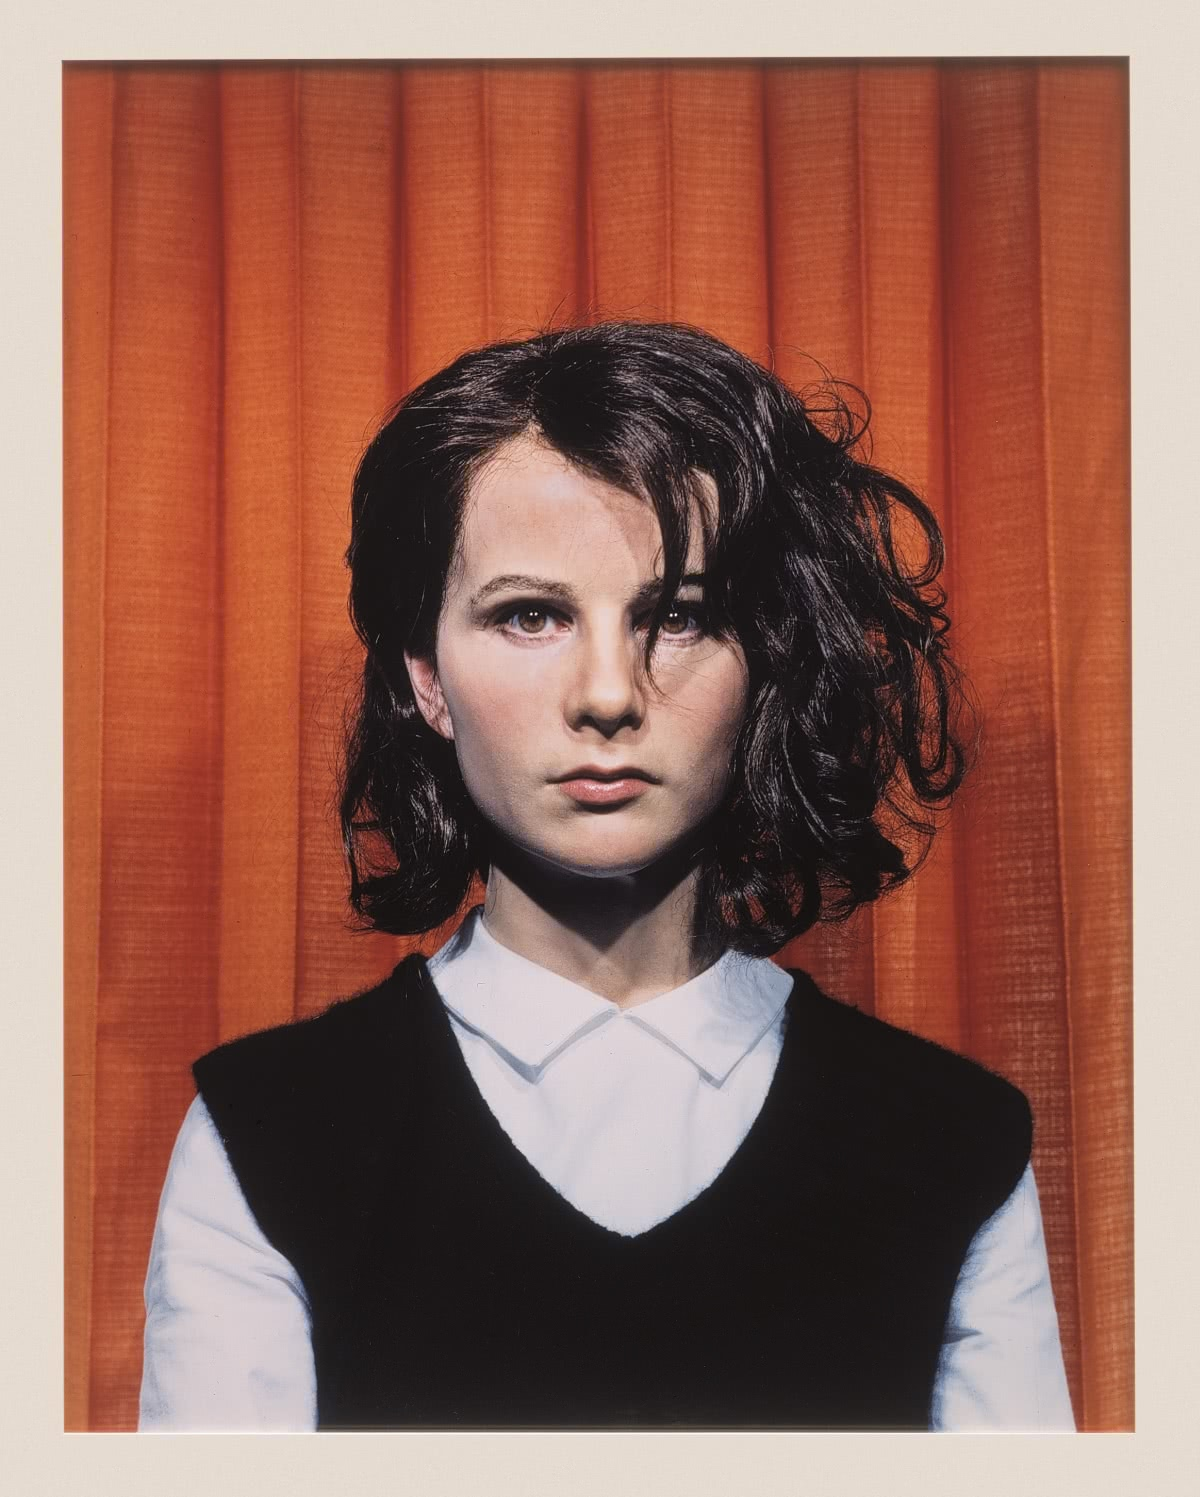 Gillian Wearing. Self portrait at 17 years old. Album. 2003. Collection Albright-Knox Art Gallery, Buffalo, NY. Charles Clifton Fund, 2004. Foto: Tom Loonan.